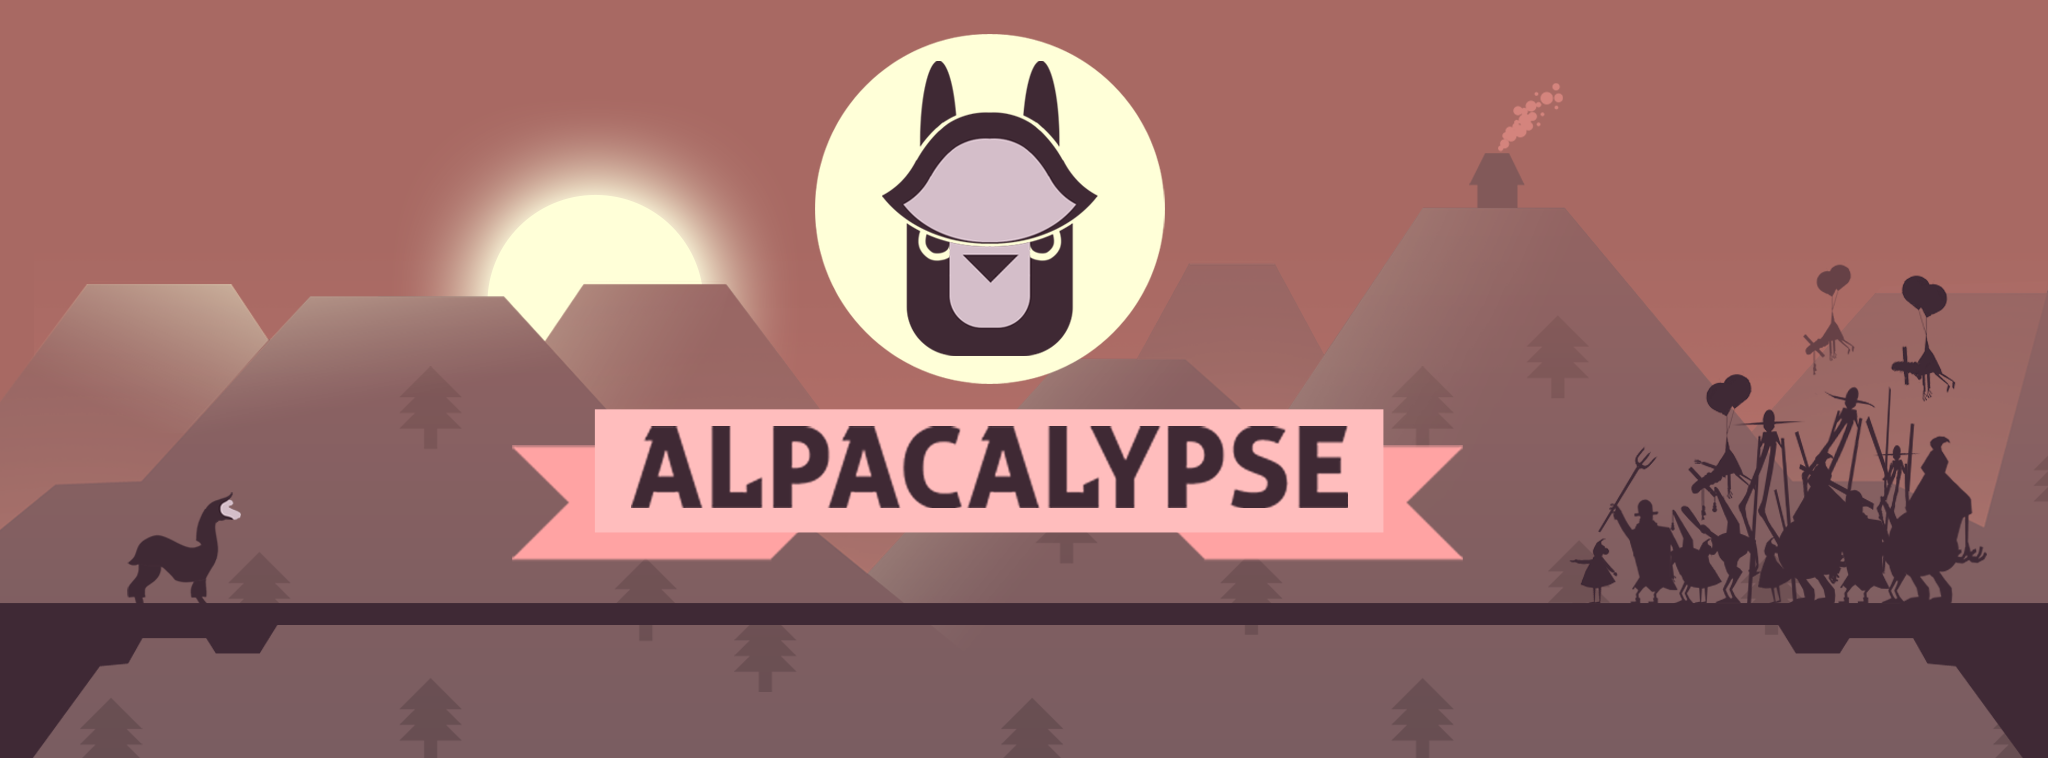 alpacalypse_is_coming_soon